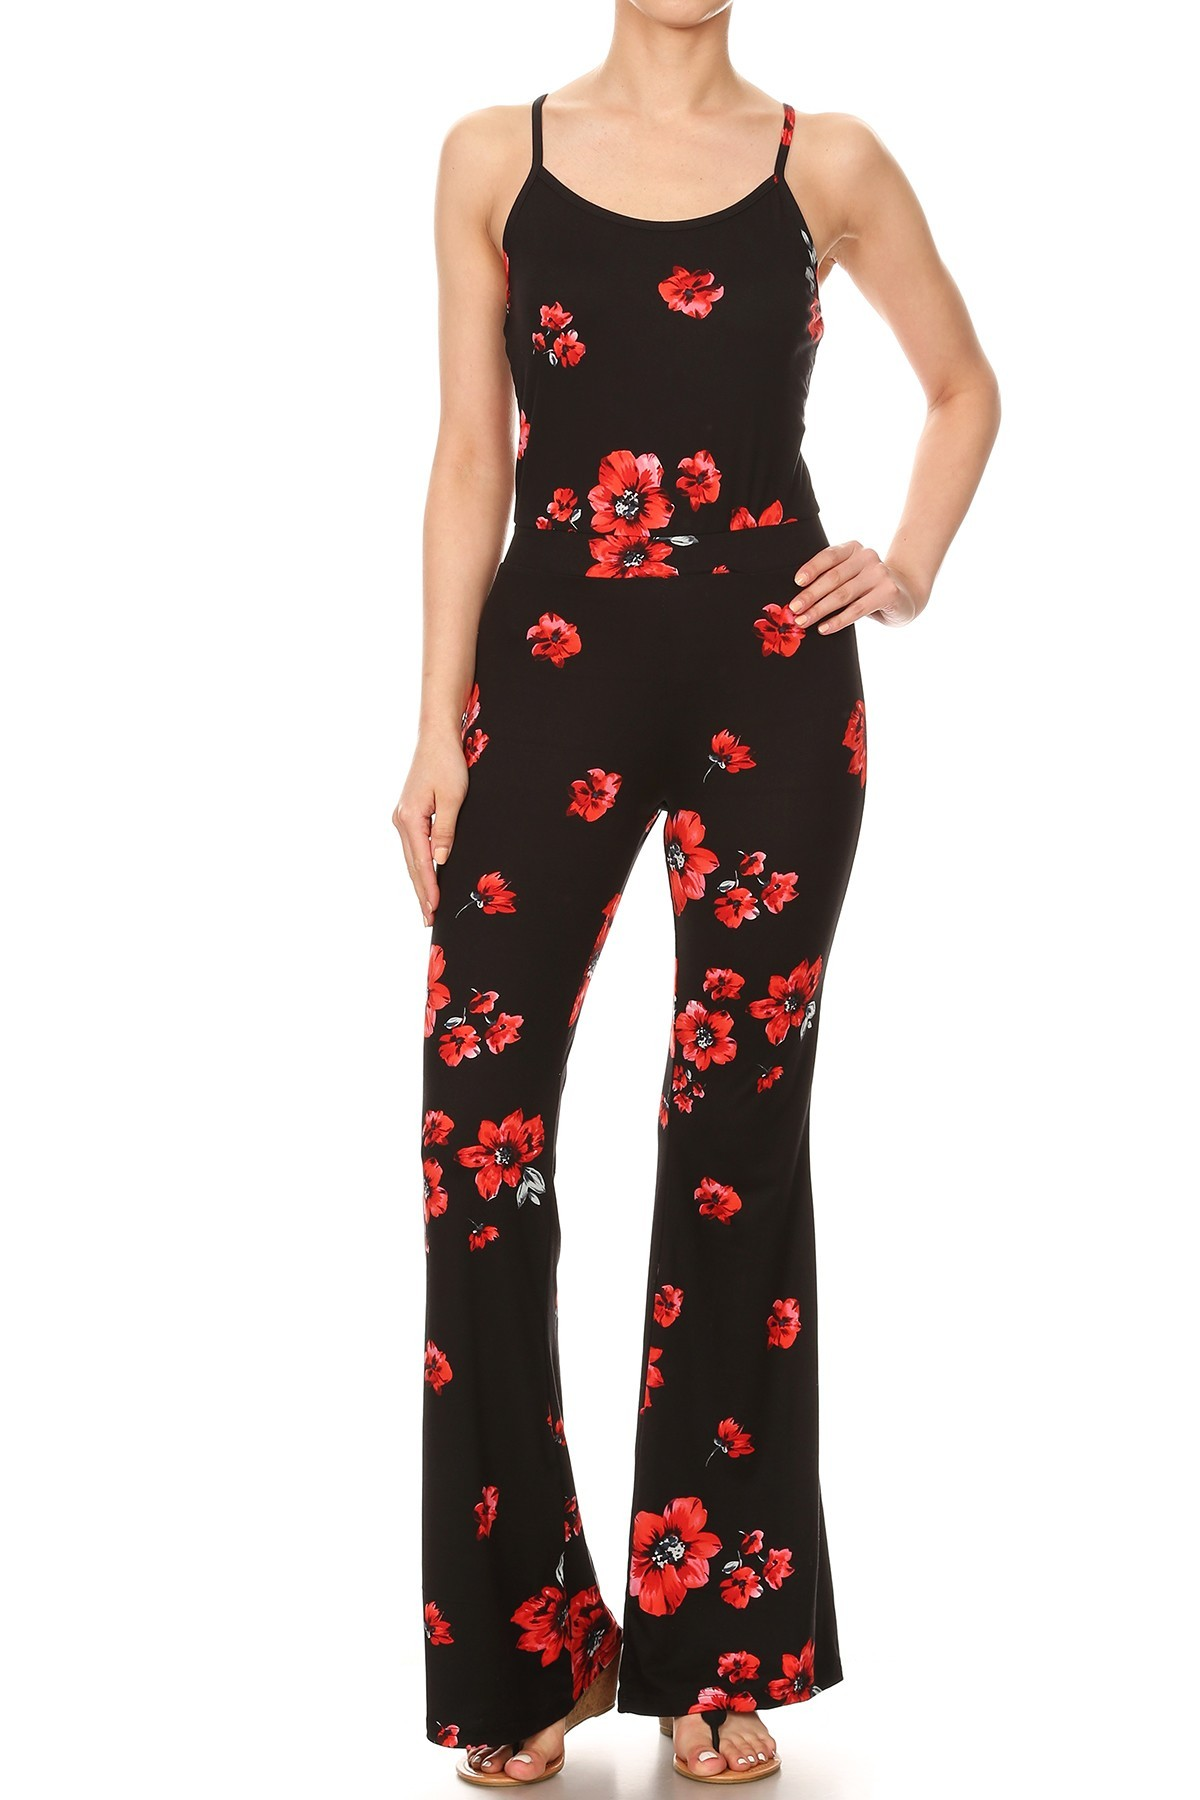 BLACK/RED FLORAL PRINT FLARE JUMPSUIT WITH CAMI TOP#8JPS01-FL01